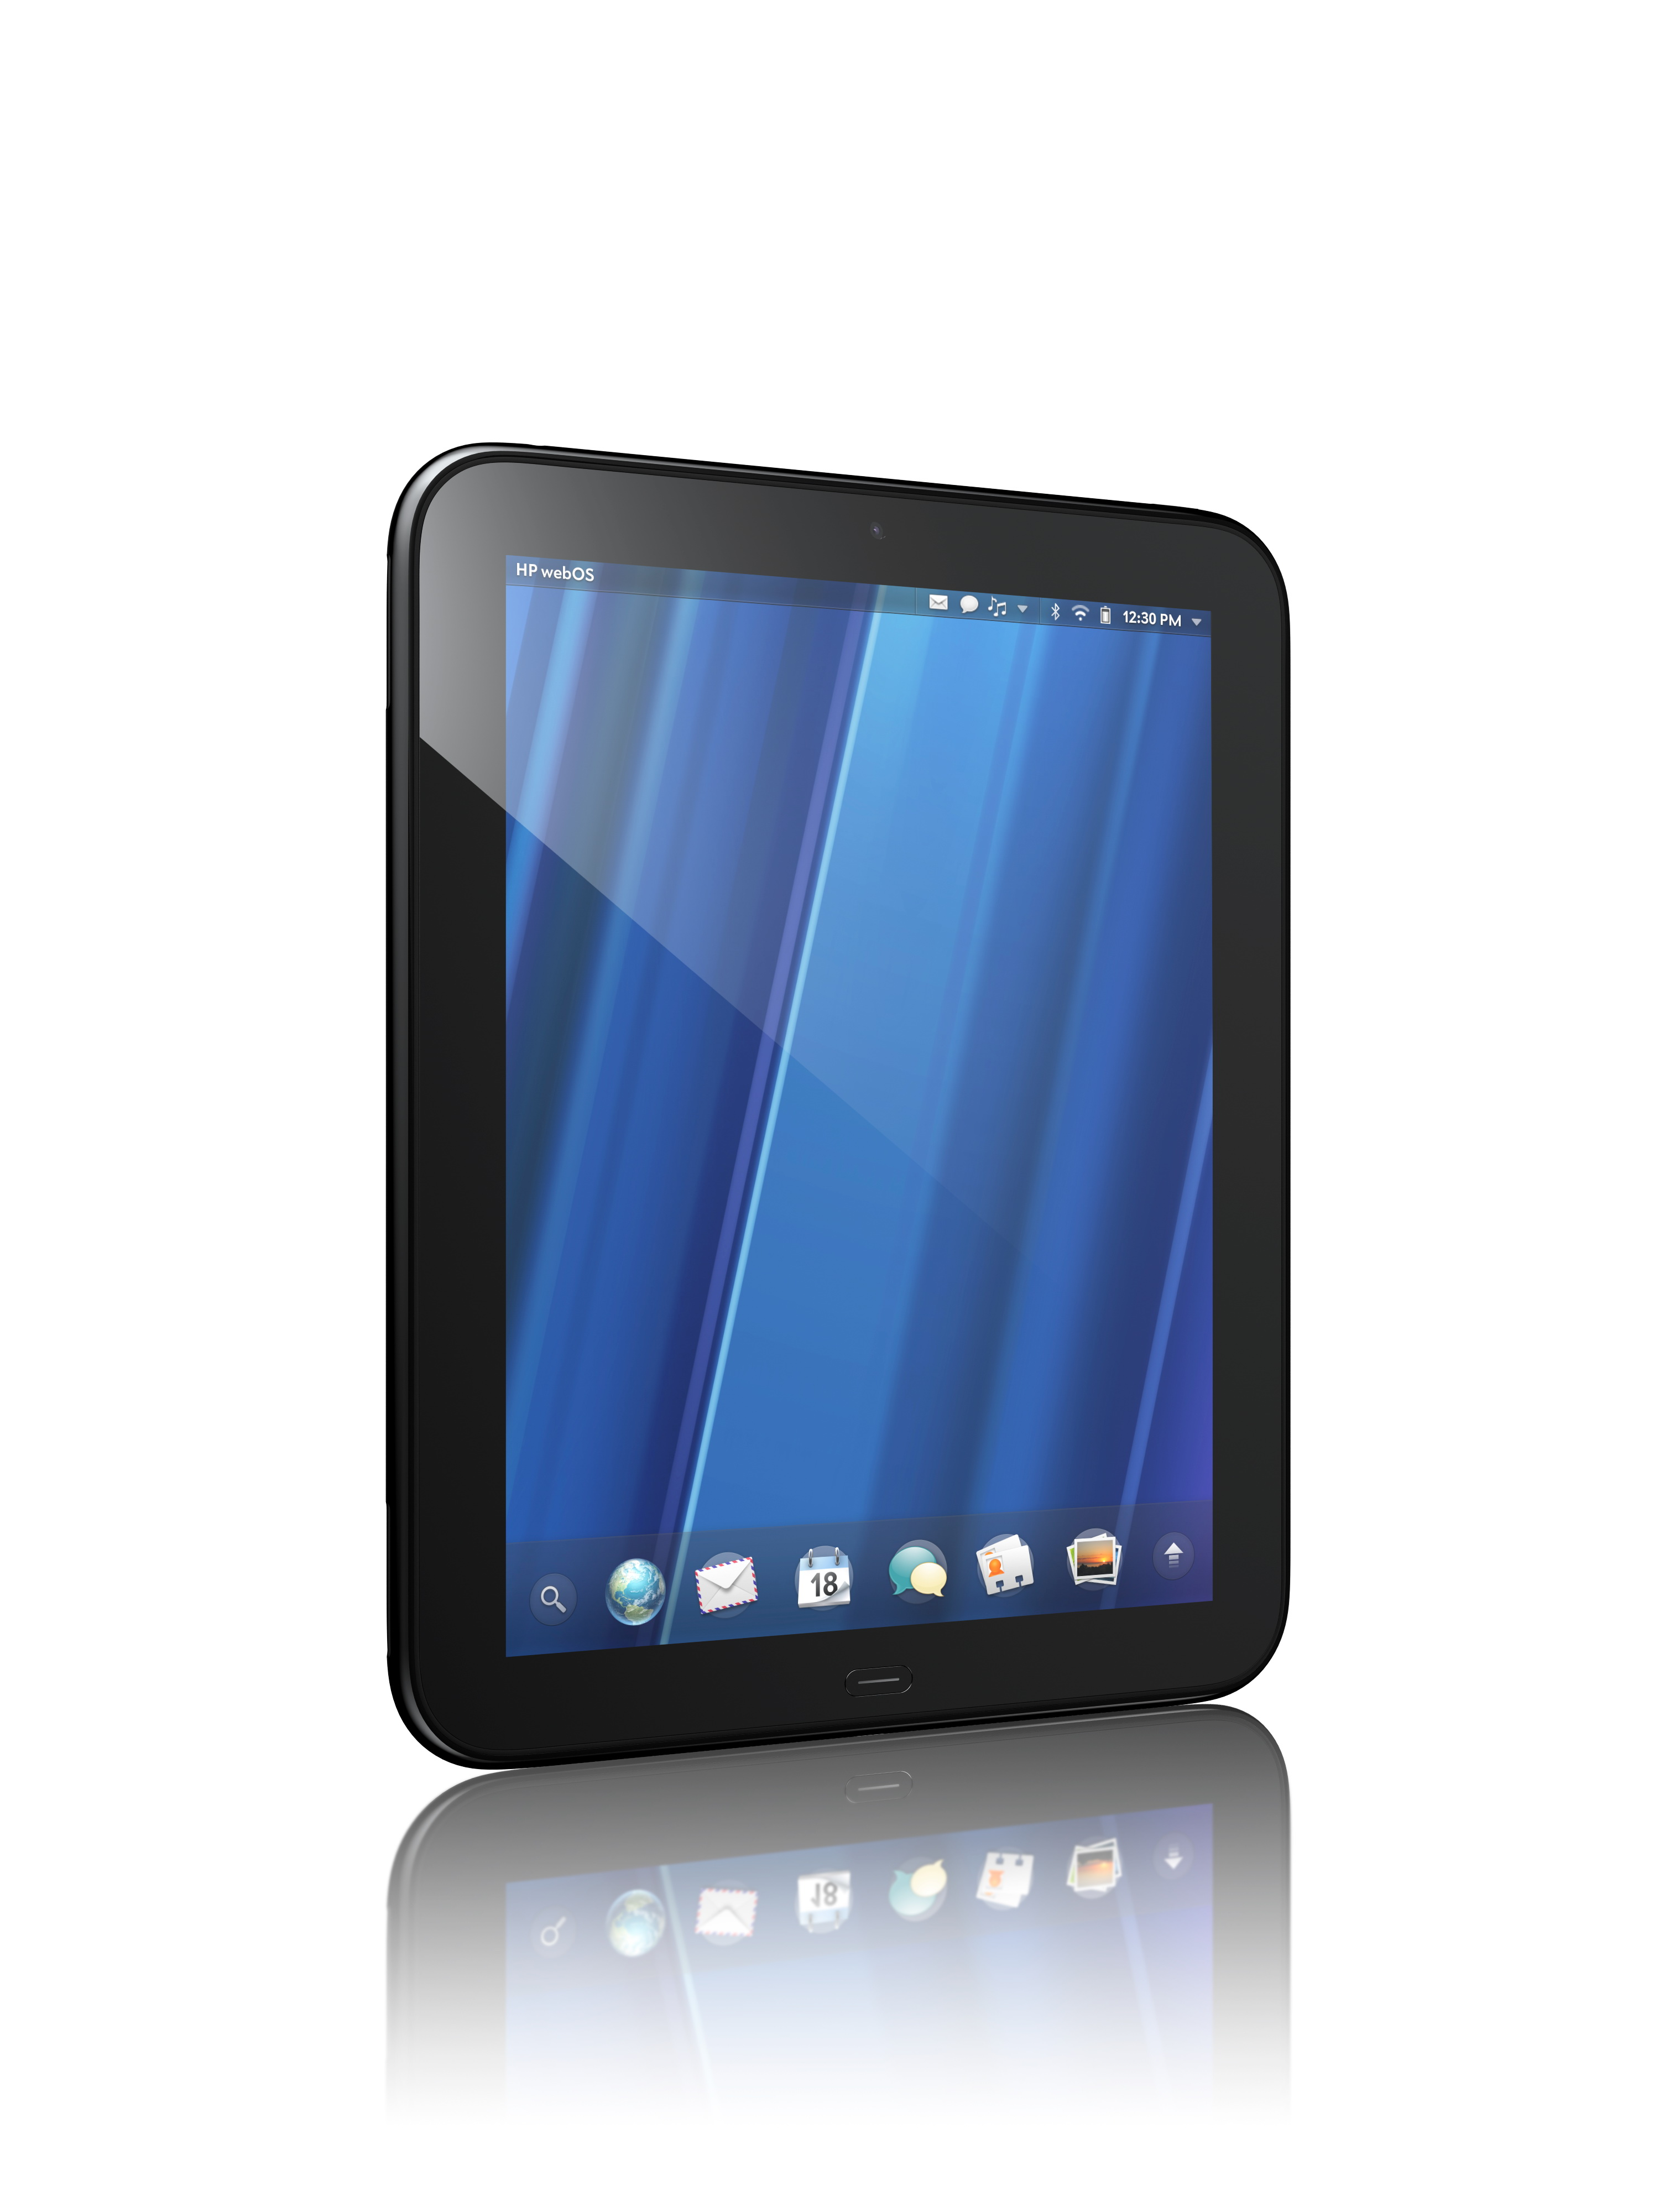 11 Android games on the HP Touchpad video